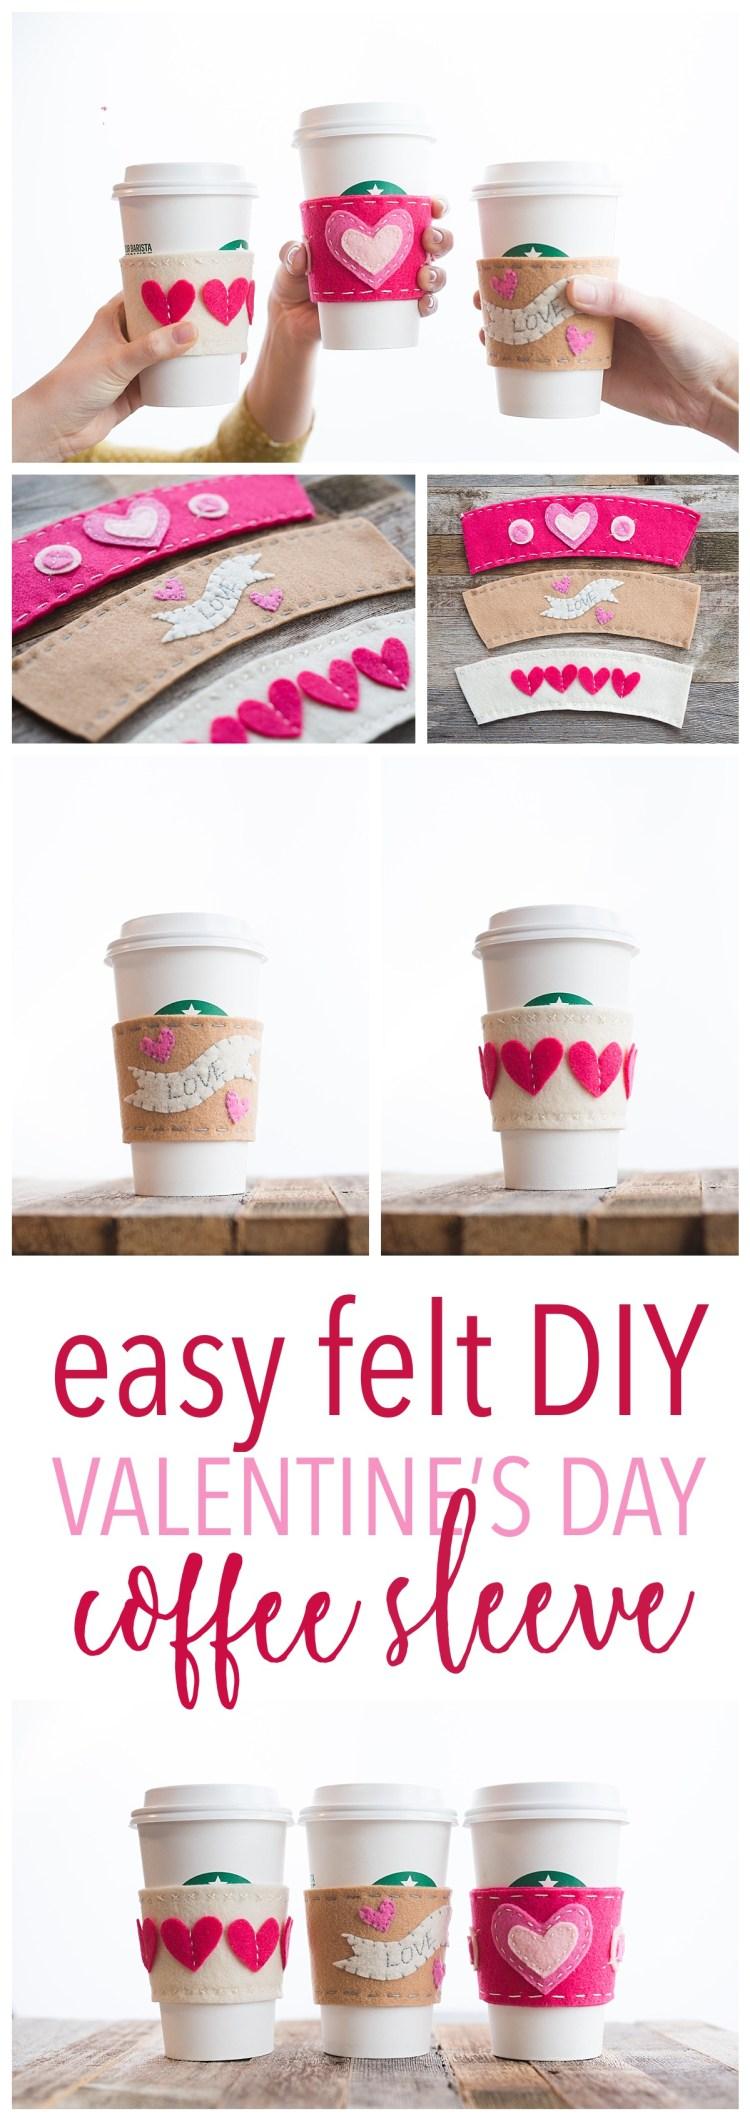 valentines day gift idea cup sleeve heart coffee